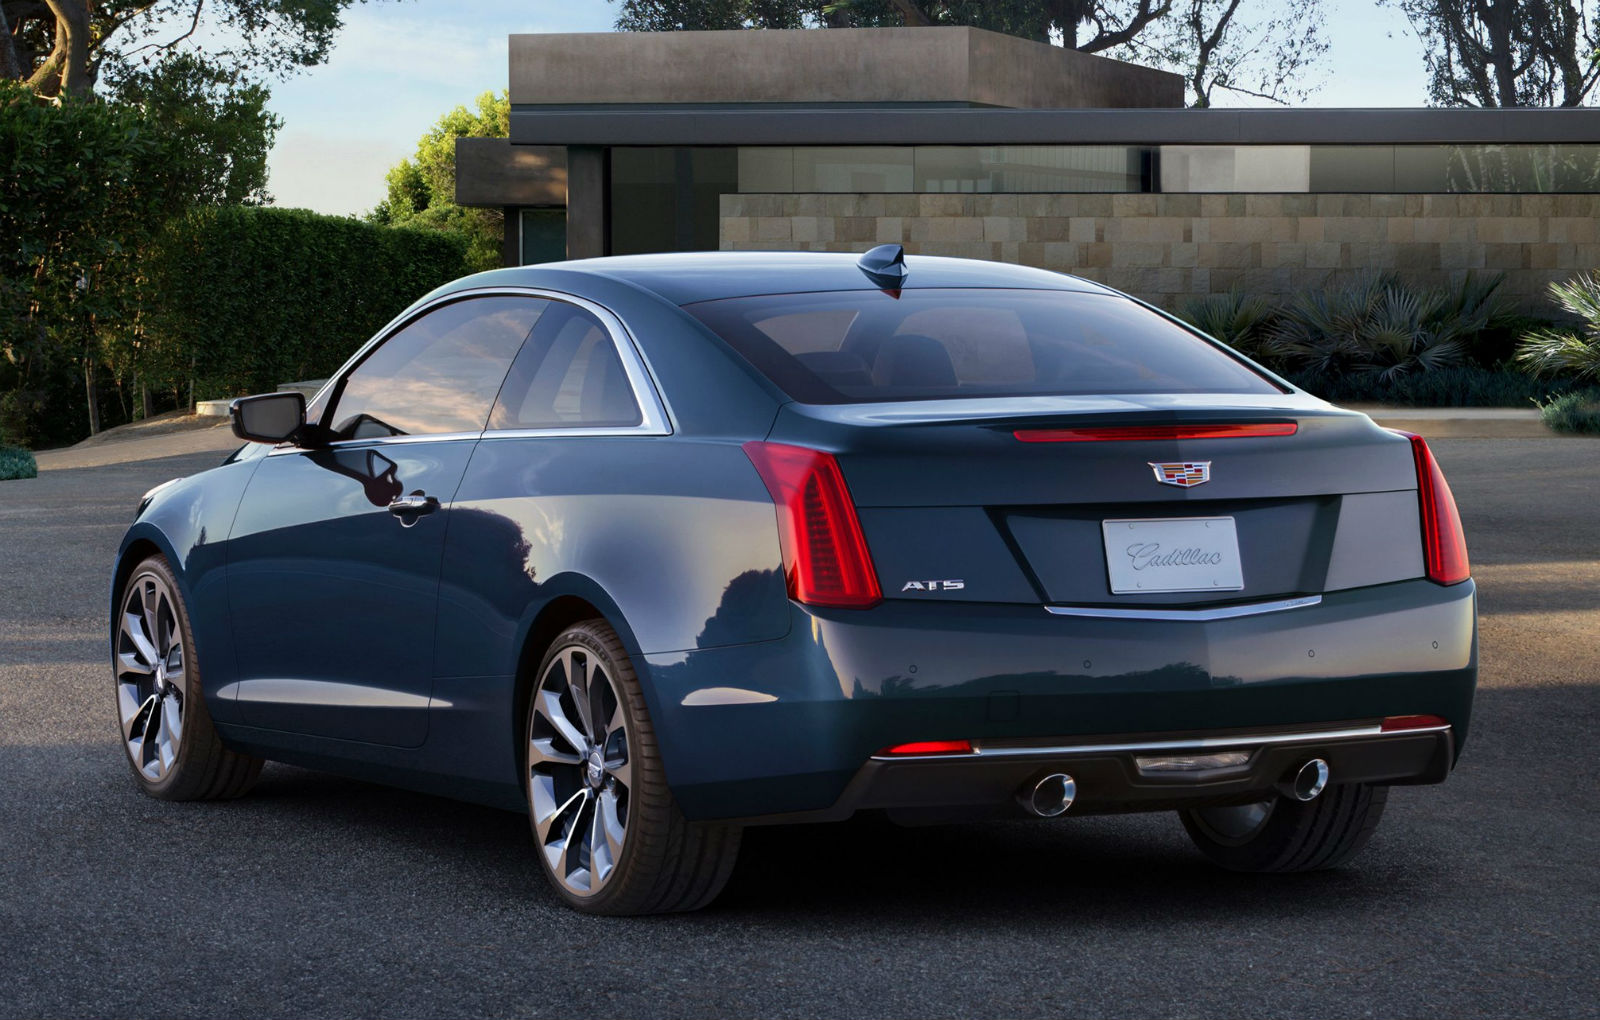 cadillac ats wallpaper wallpapersafari. Black Bedroom Furniture Sets. Home Design Ideas